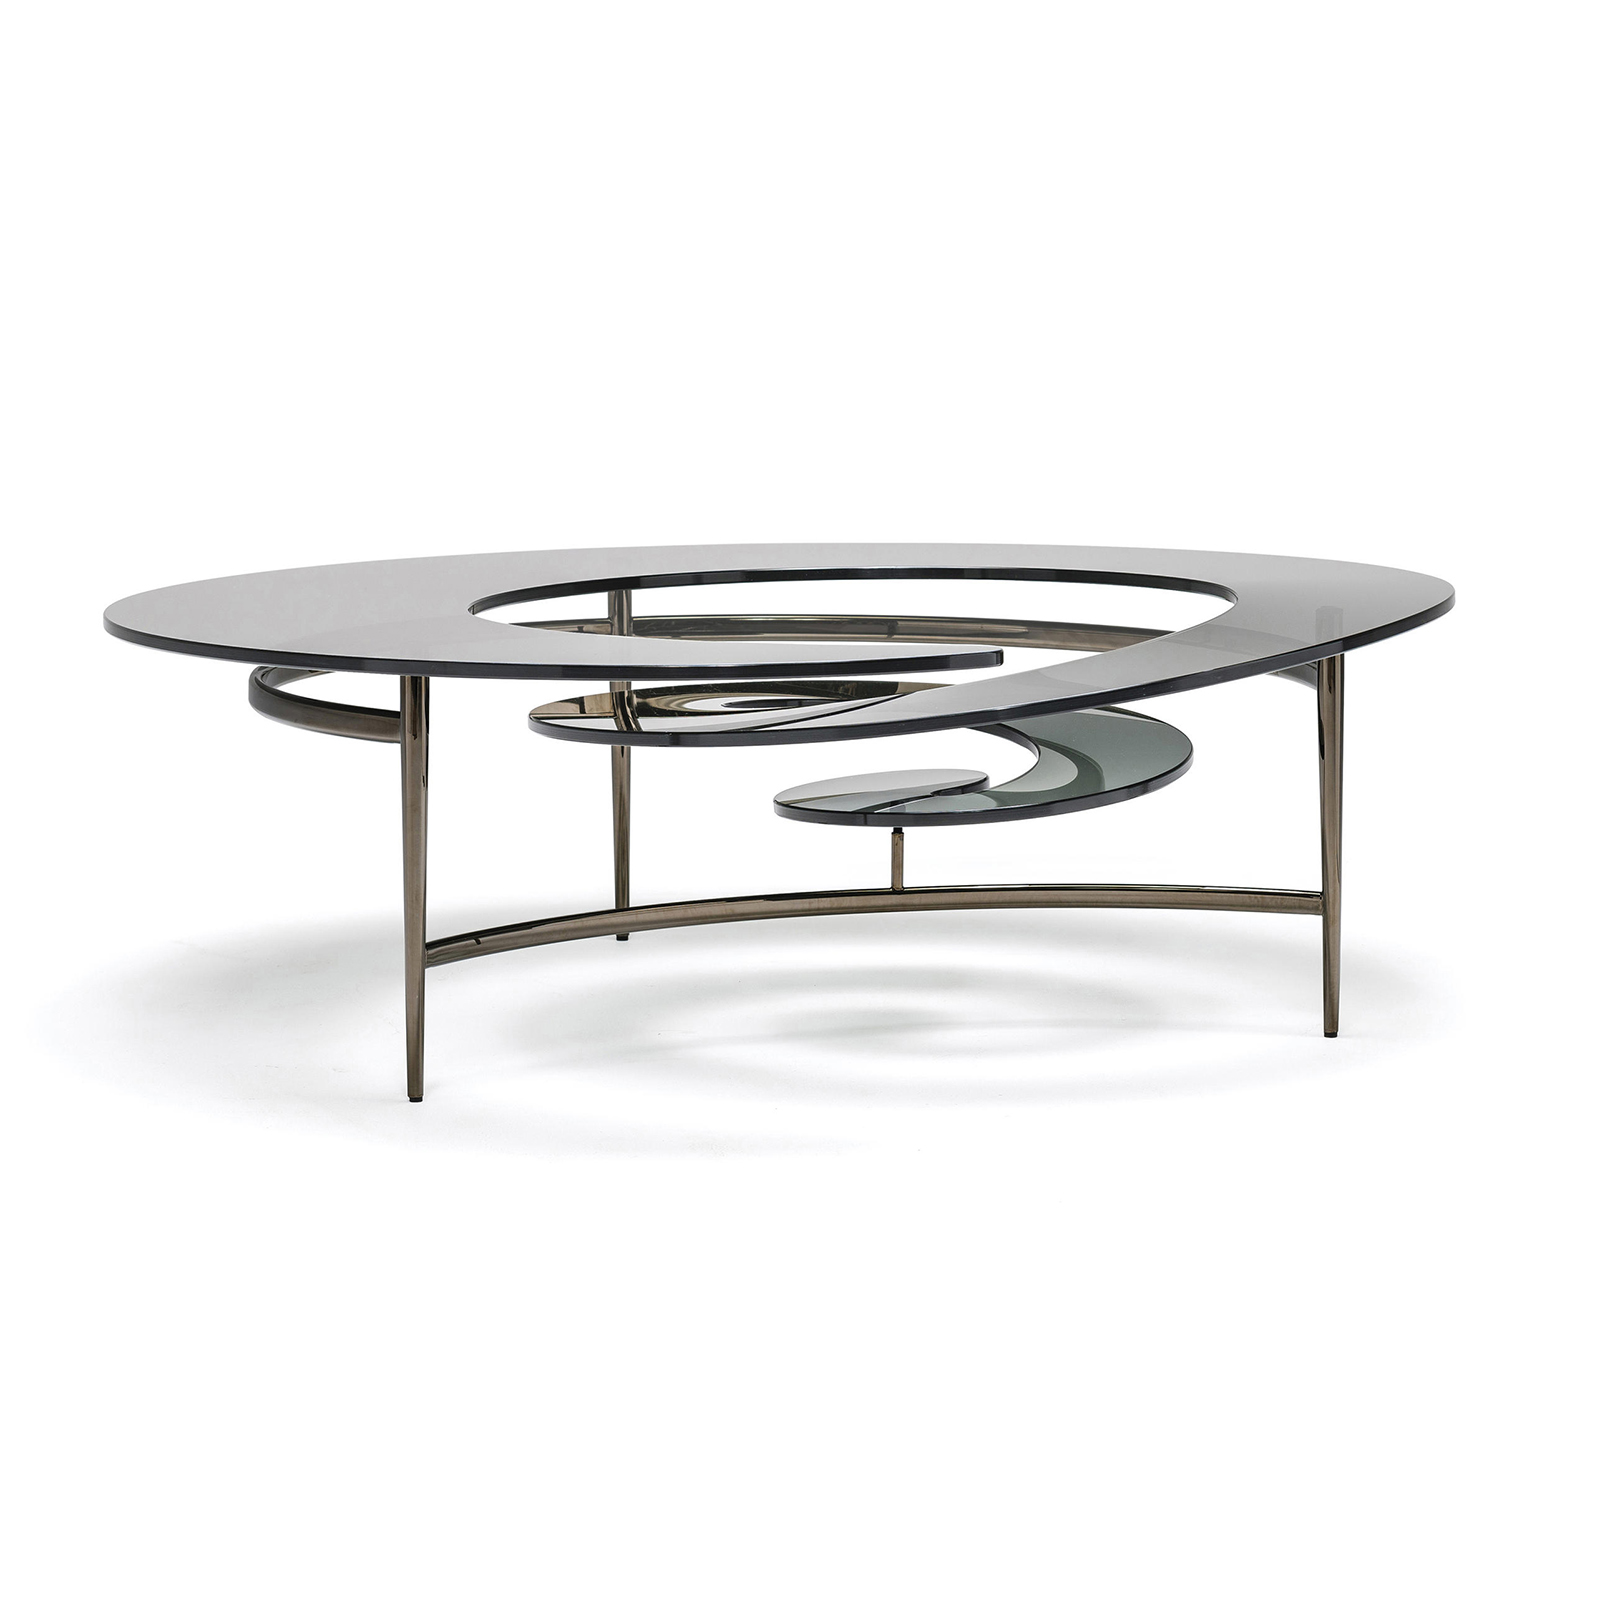 But Table Verre Table Basse Design En Verre Spirale Mobilier De Luxe